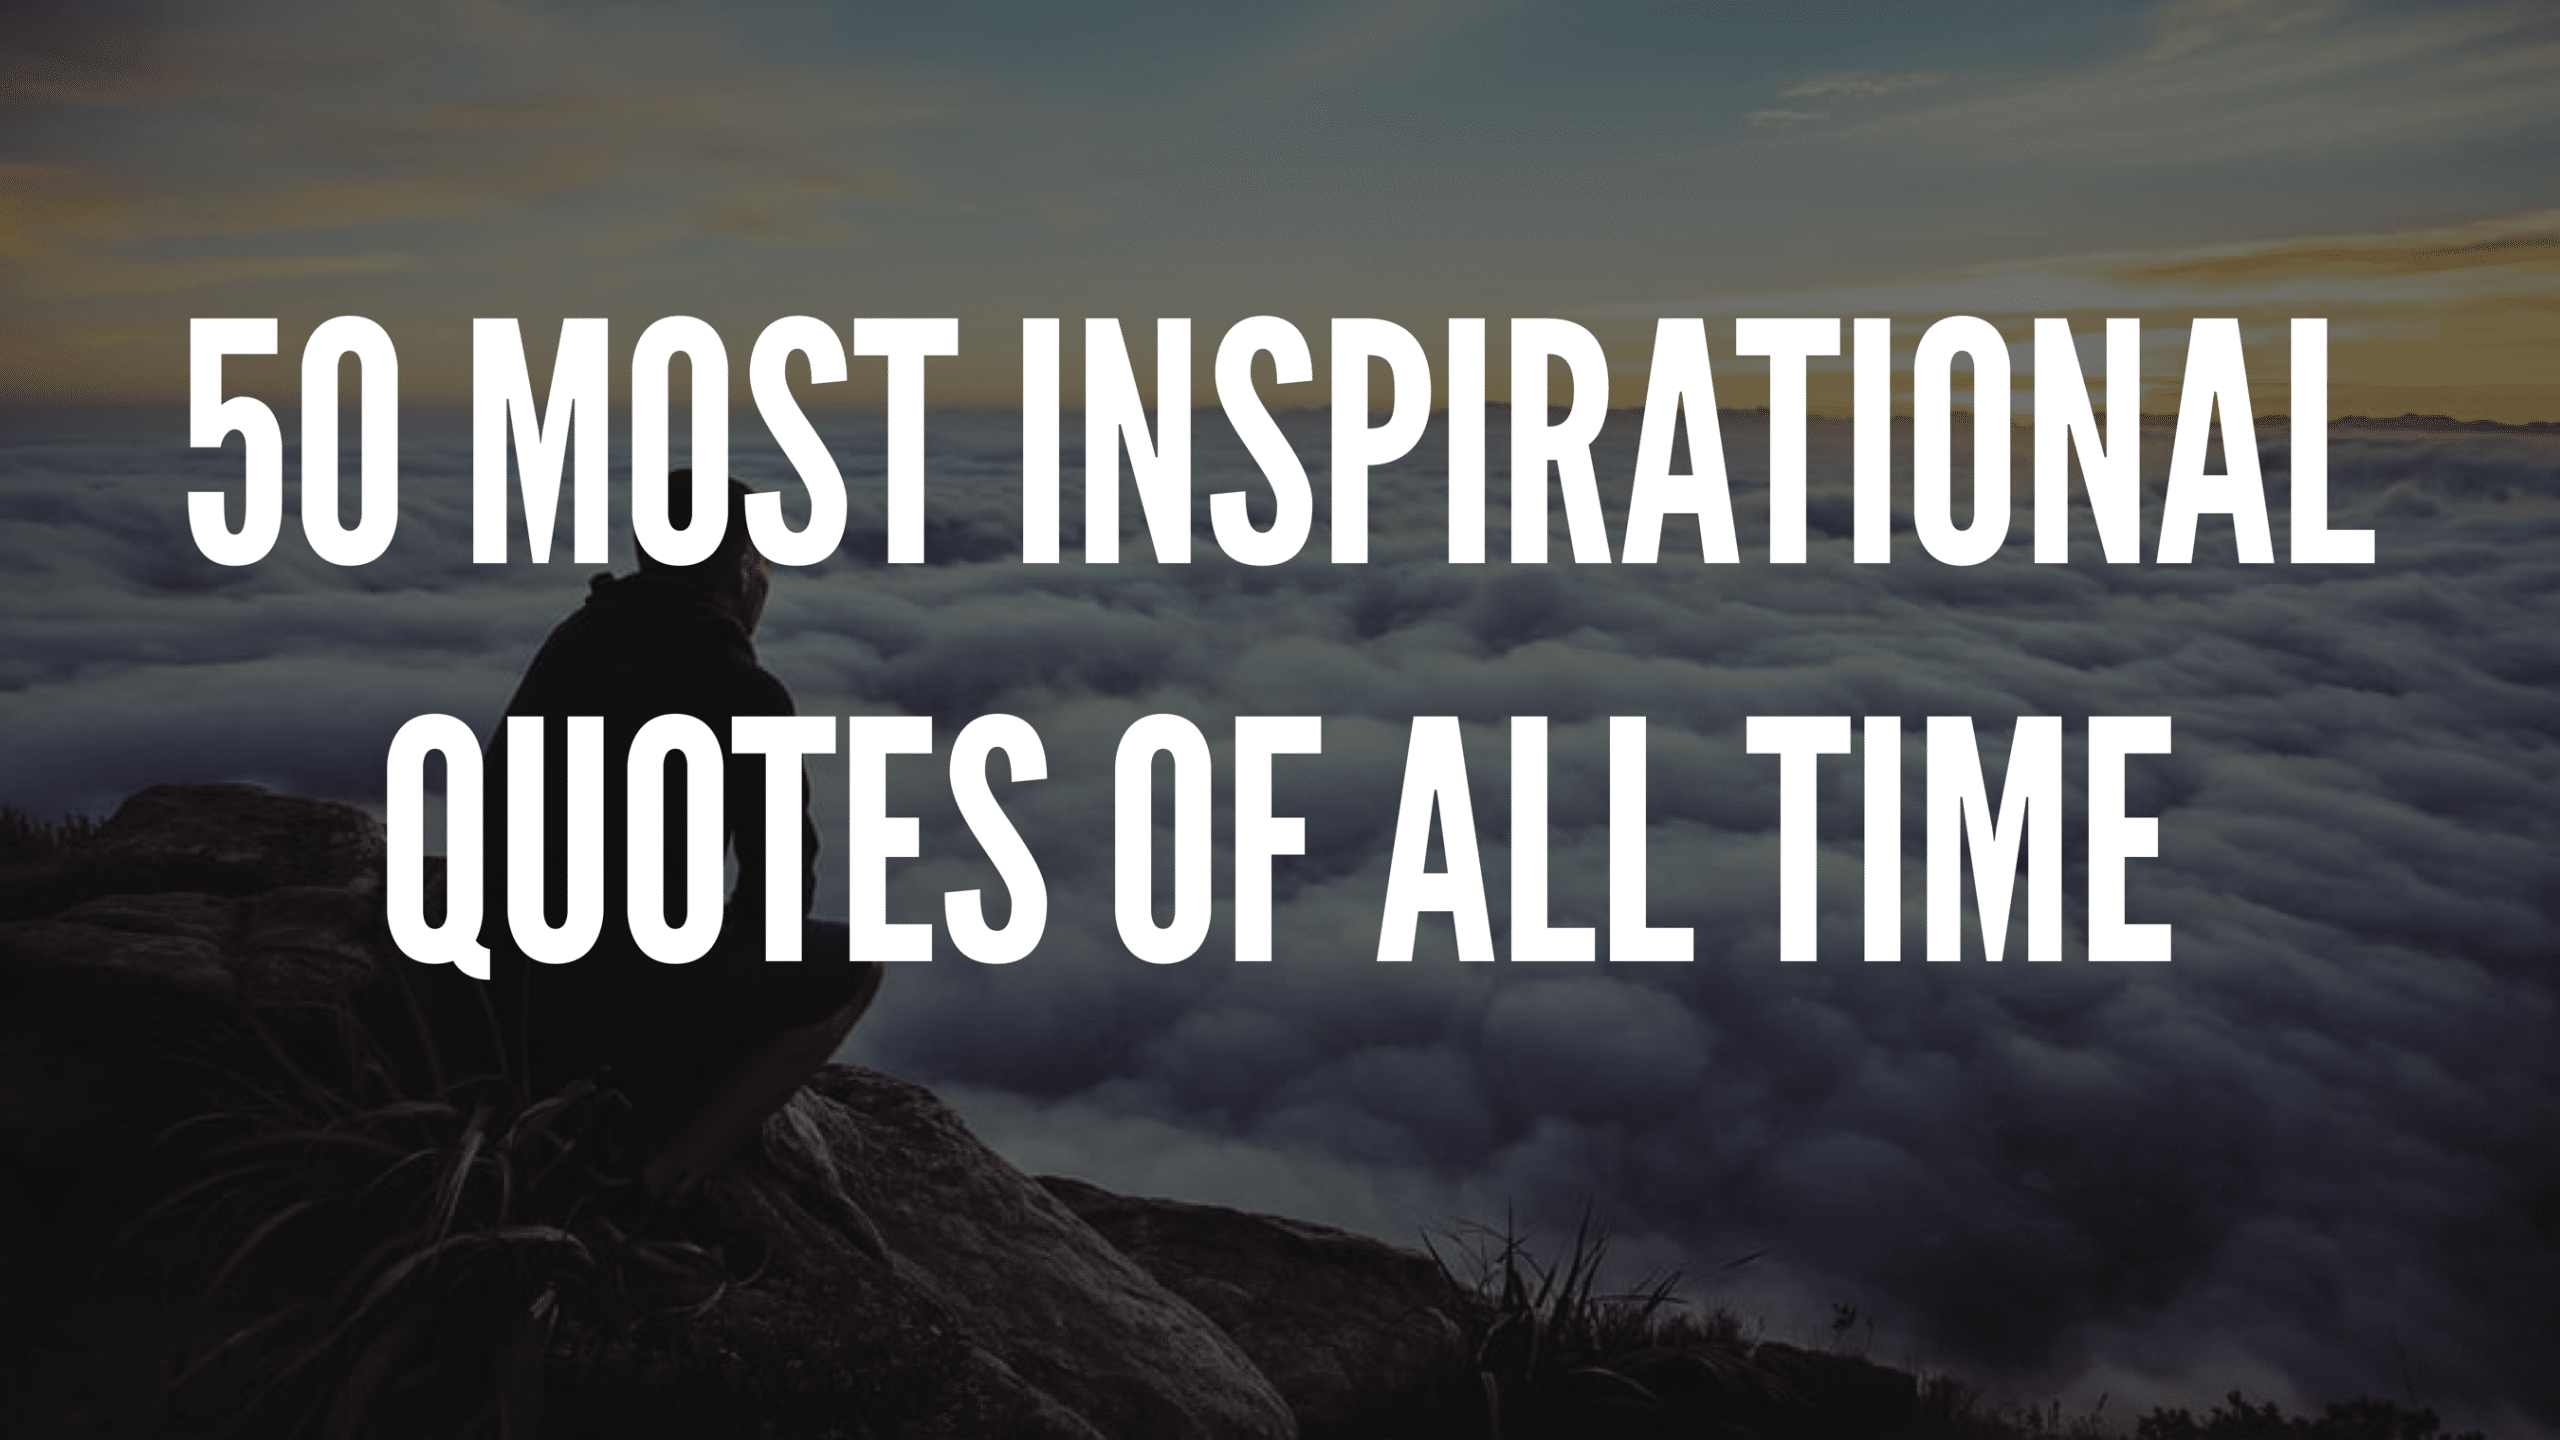 Inspirational Quotes To Lift Your Spirit After A Harsh Day: Ralph Waldo Emerson, Nelson